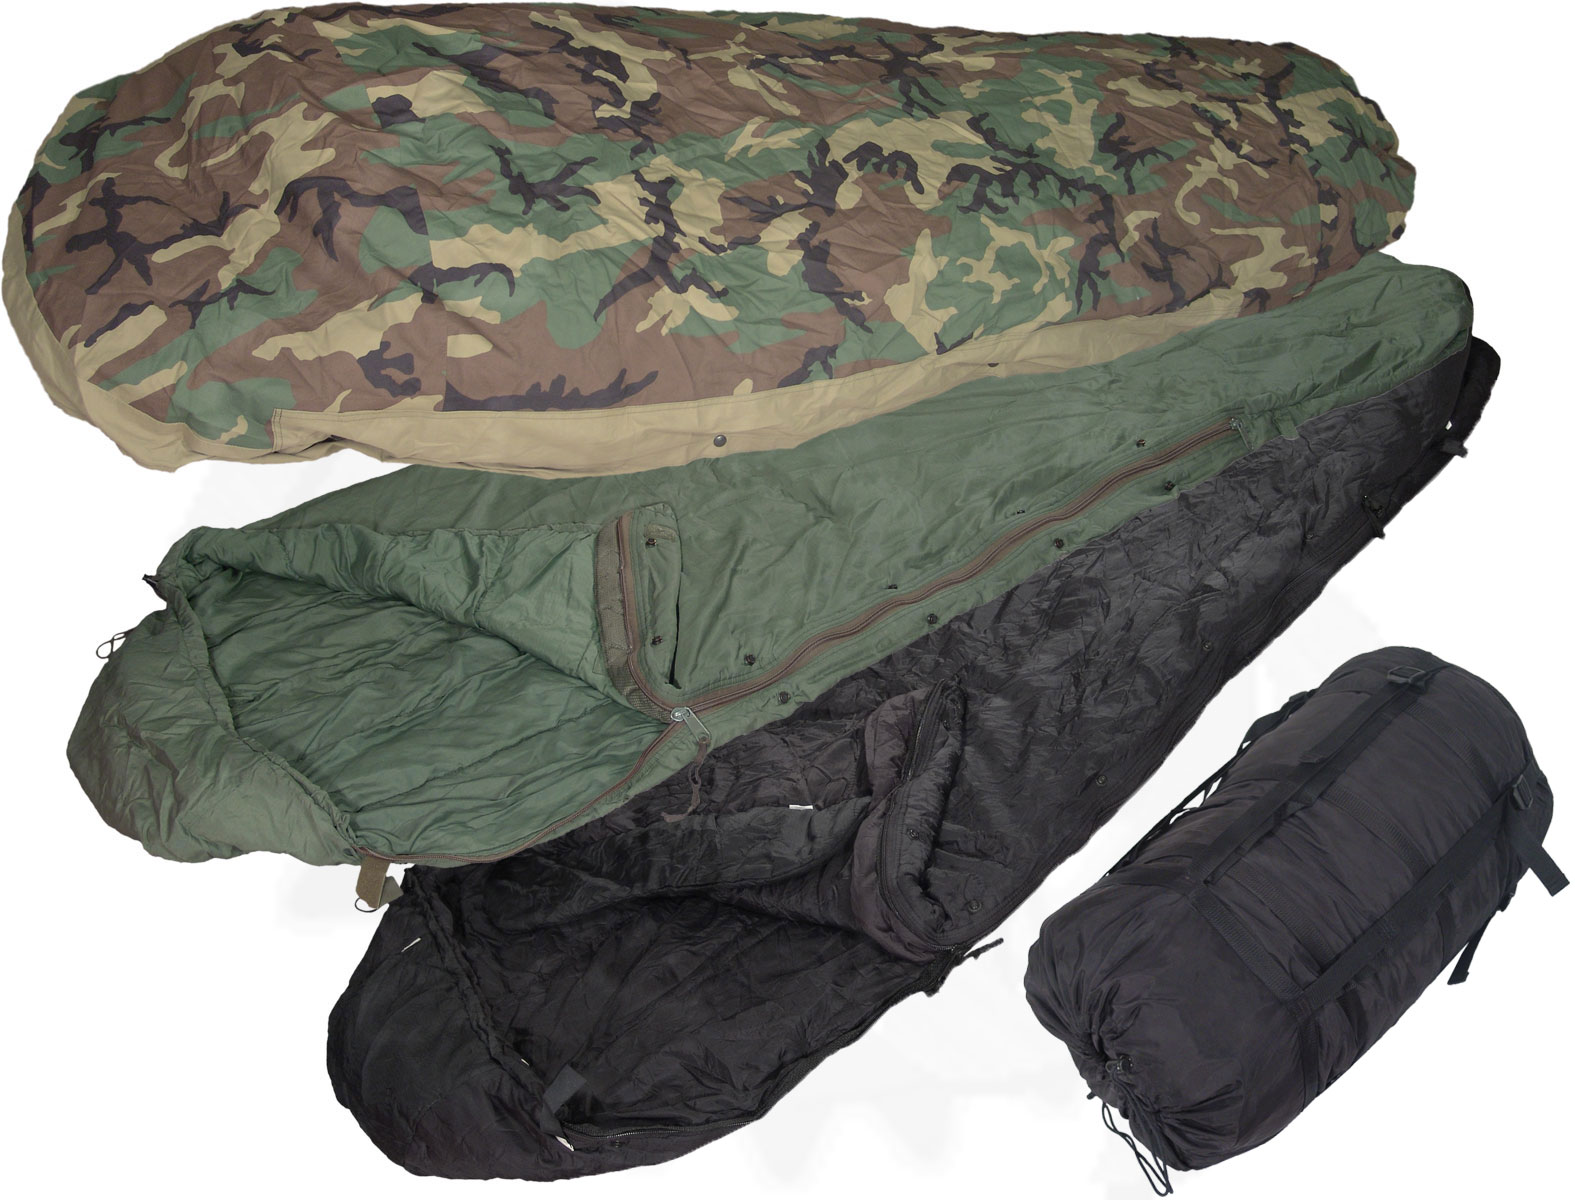 Military Grade Bivy Sack Made in the USA